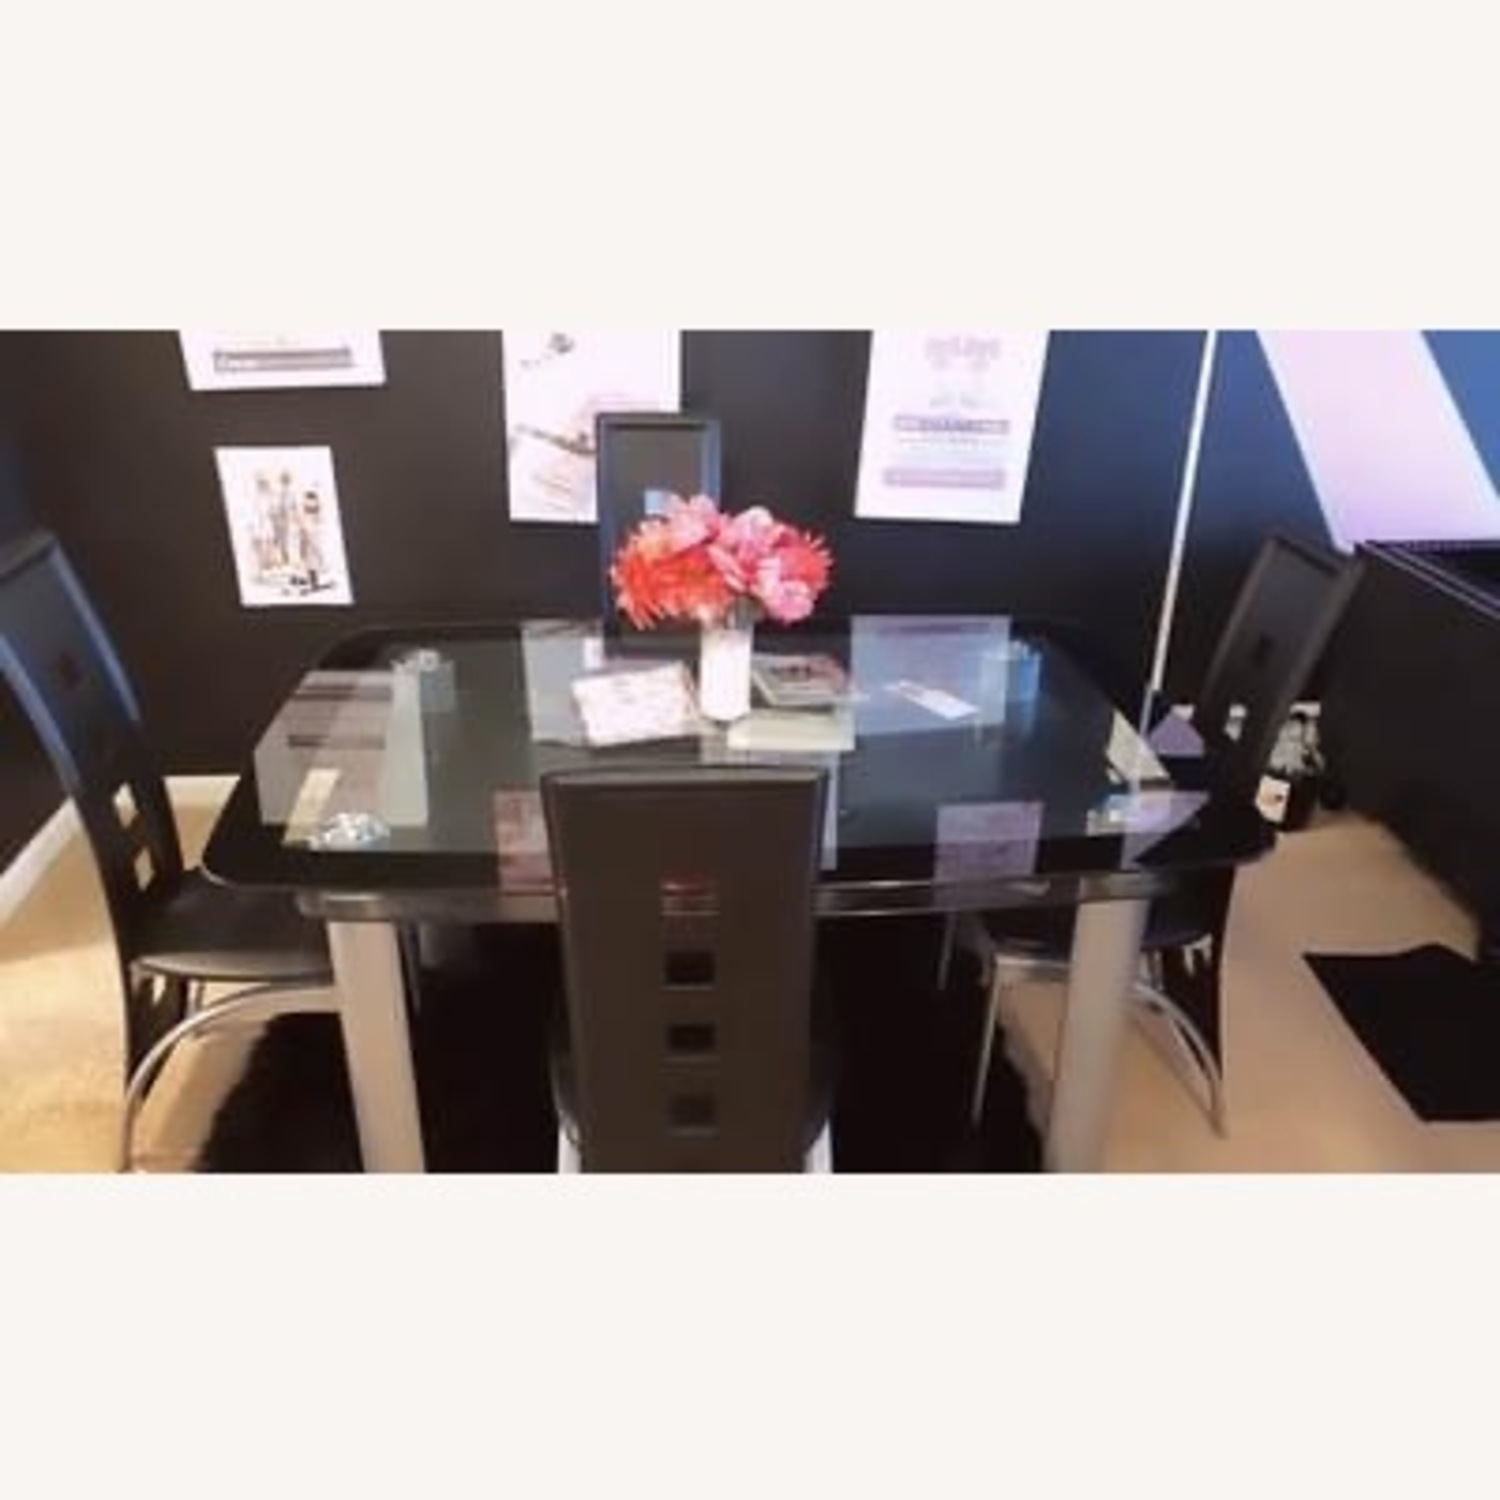 Wayfair Black Dining Table Set with Chairs - image-2